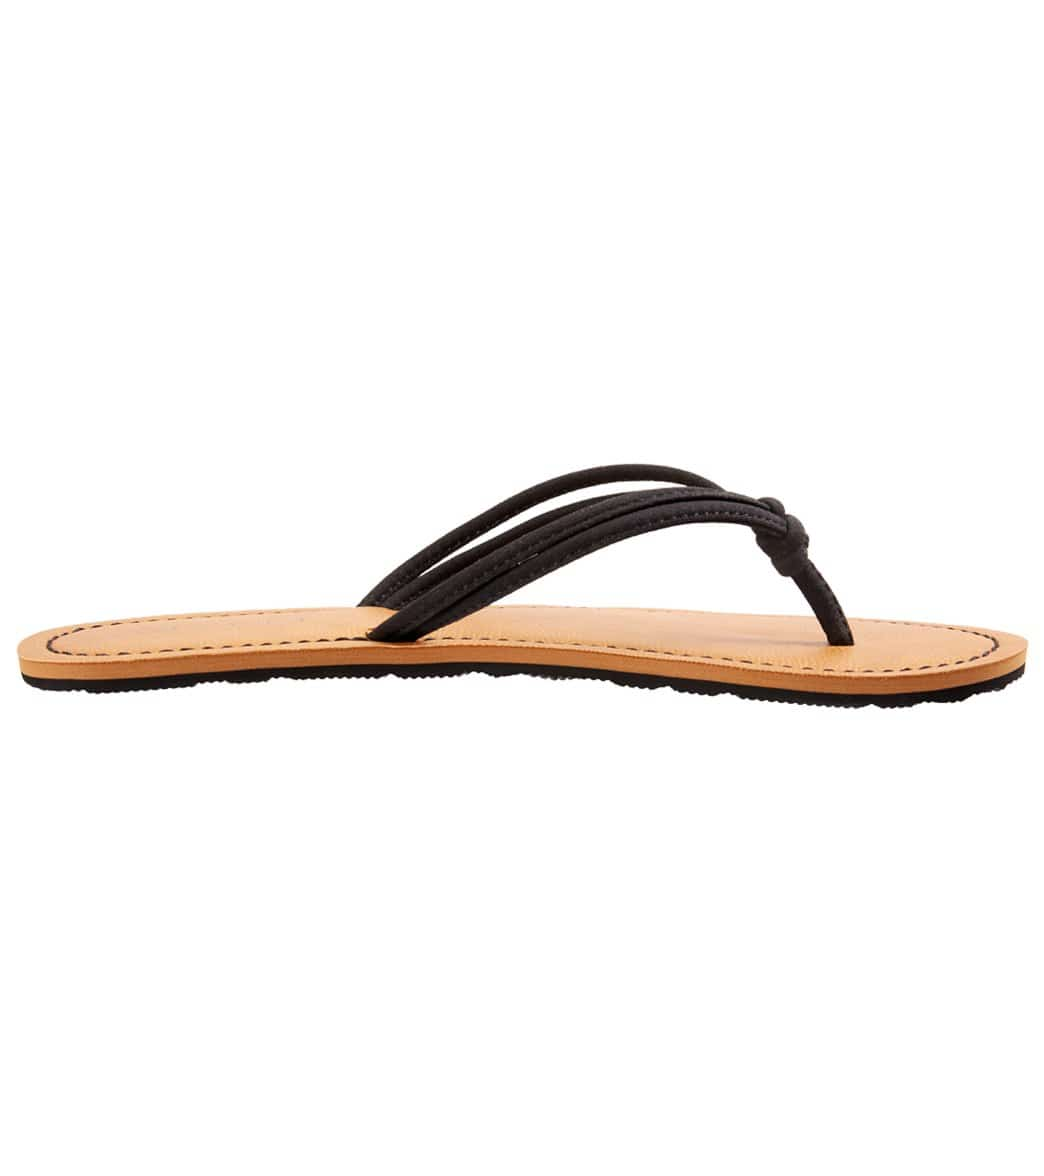 bb37c0817a65a Volcom Women s Forever 3 Flip Flop at SwimOutlet.com